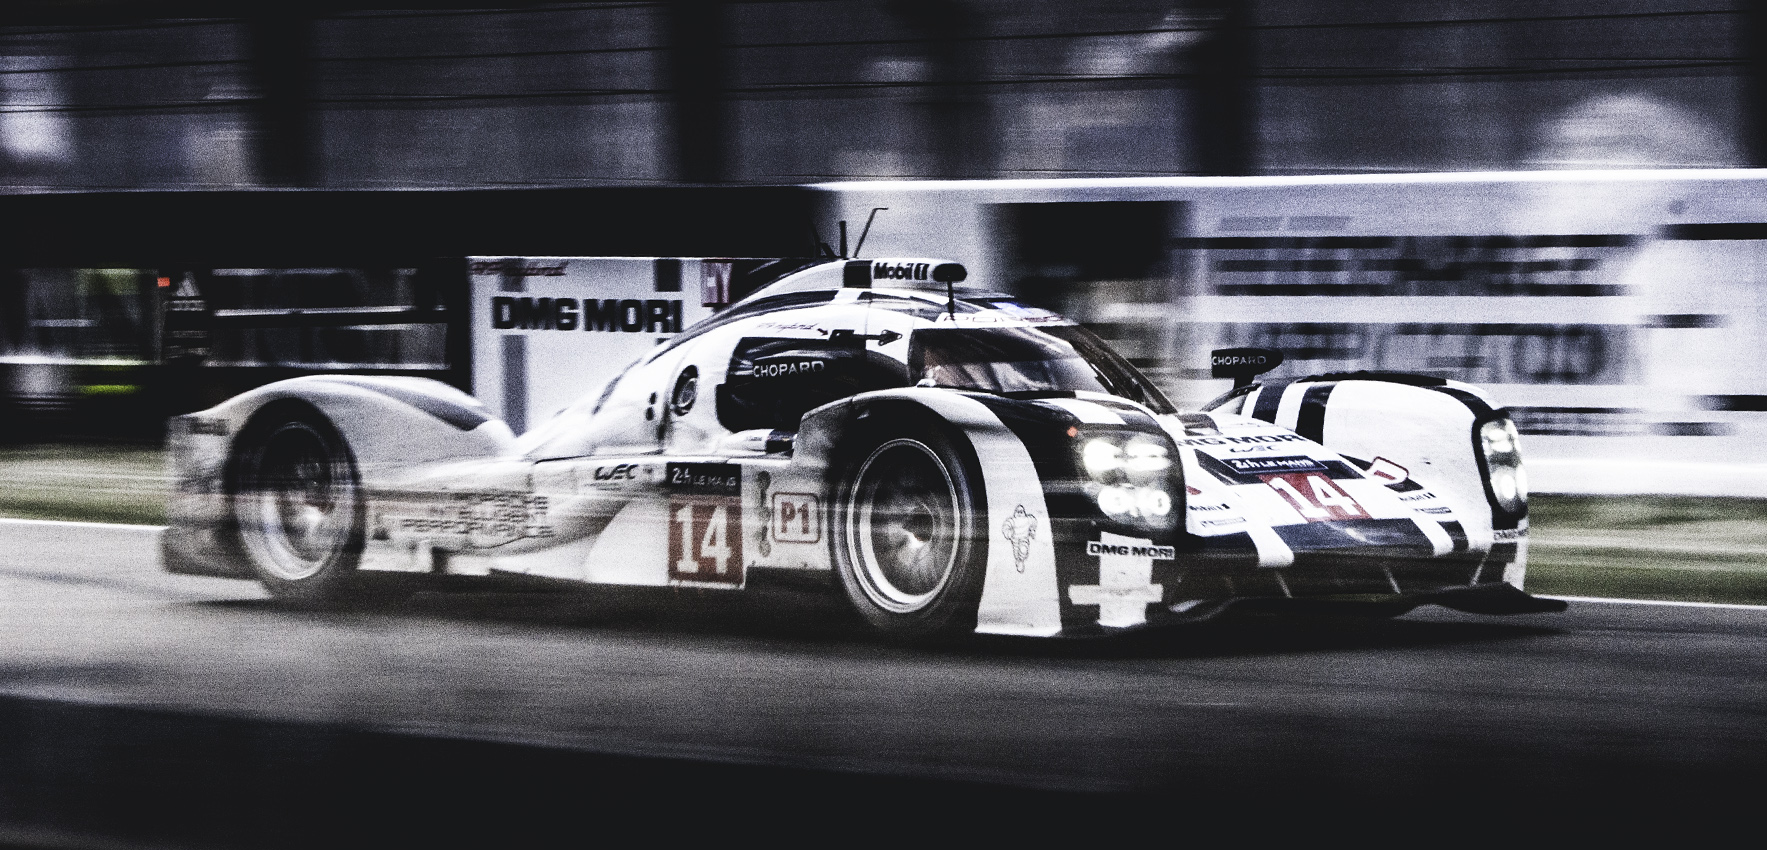 Jayson-Fong-Photography-Form-and-function-international-Porsche 919-LeMans.jpg